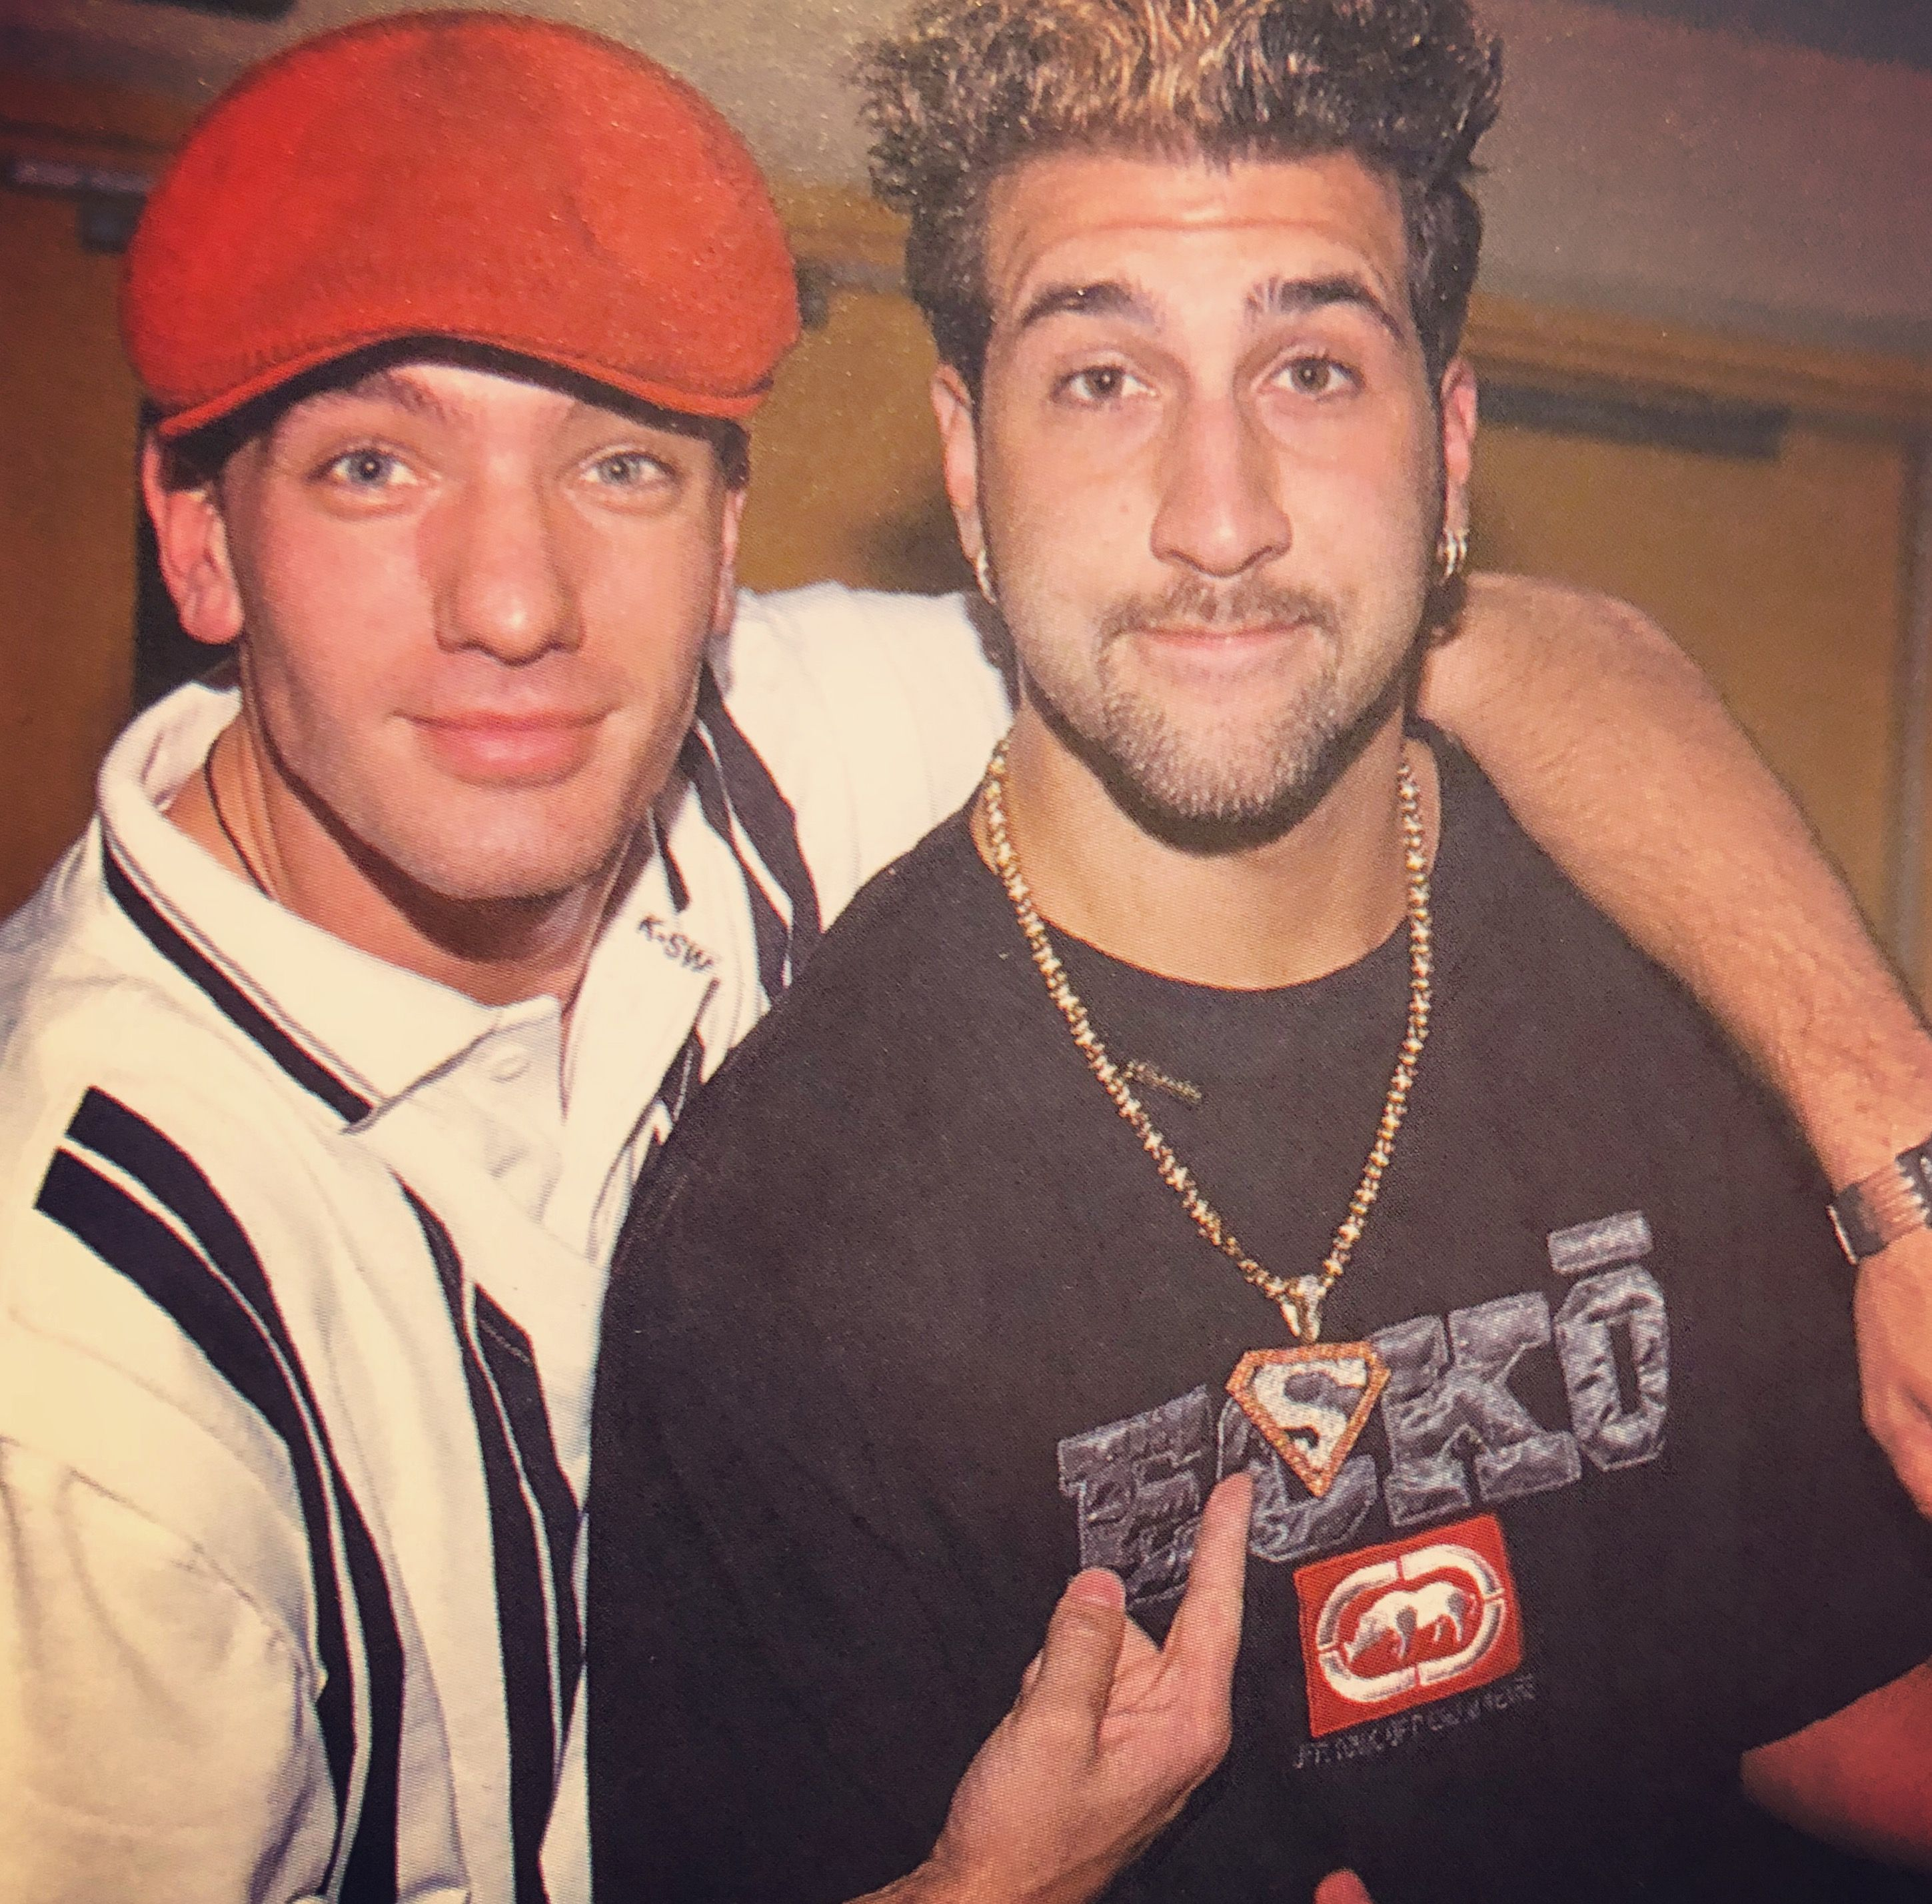 Pin By Retro Nsync On Team Jc With Images Joey Fatone Nsync